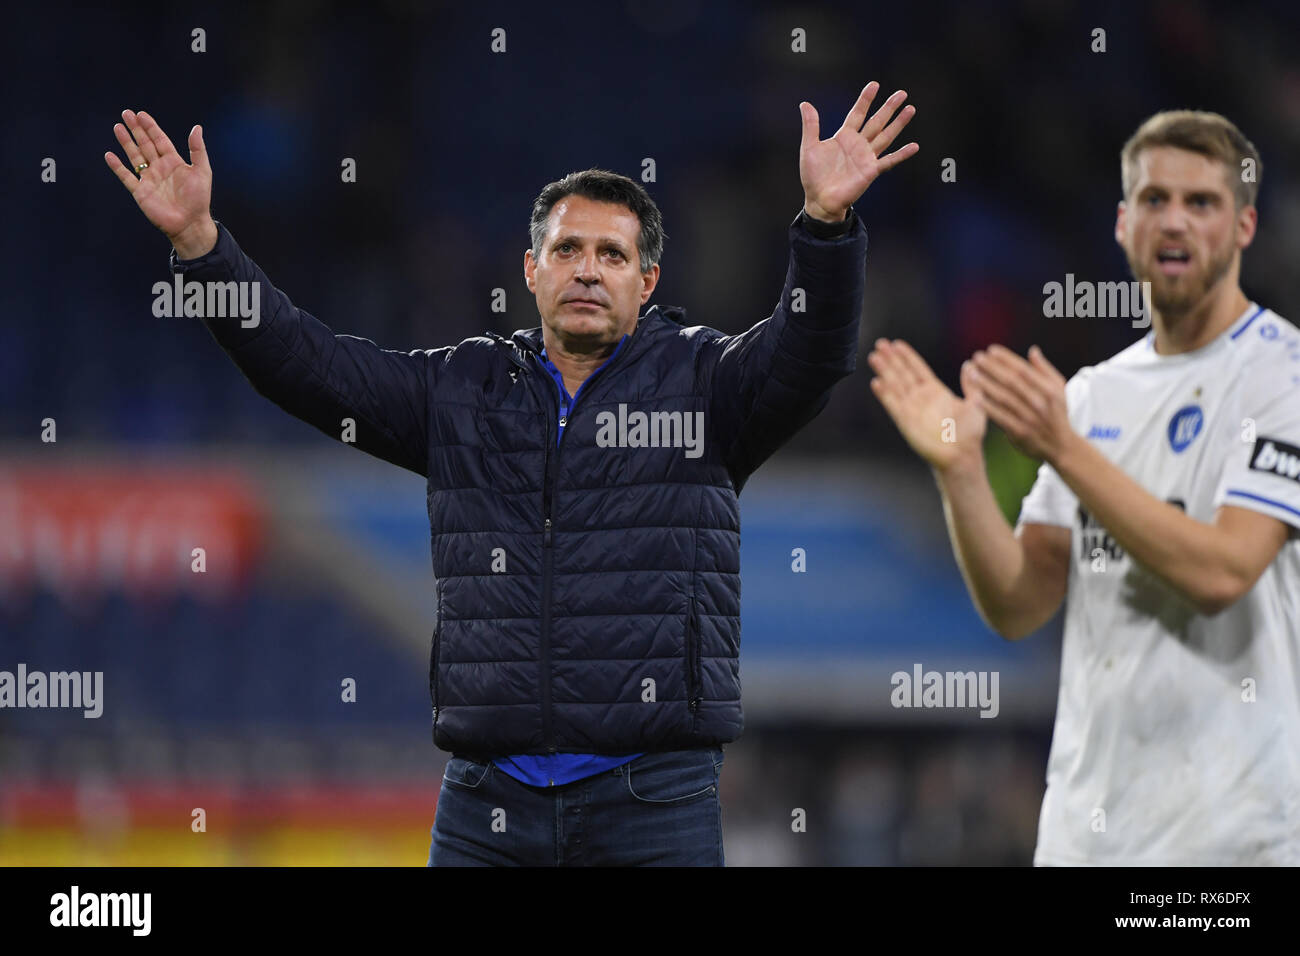 Duisburg, Deutschland. 08th Mar, 2019. final jubilation KSC: coach Alois Schwartz (KSC). GES/football/3rd league: Krefelder football club Uerdingen - Karlsruher SC, 08.03.2019 Football/Soccer: 3rd League: KFC Uerdingen vs Karlsruher SC, Duisburg, March 8, 2019 | usage worldwide Credit: dpa/Alamy Live News - Stock Image